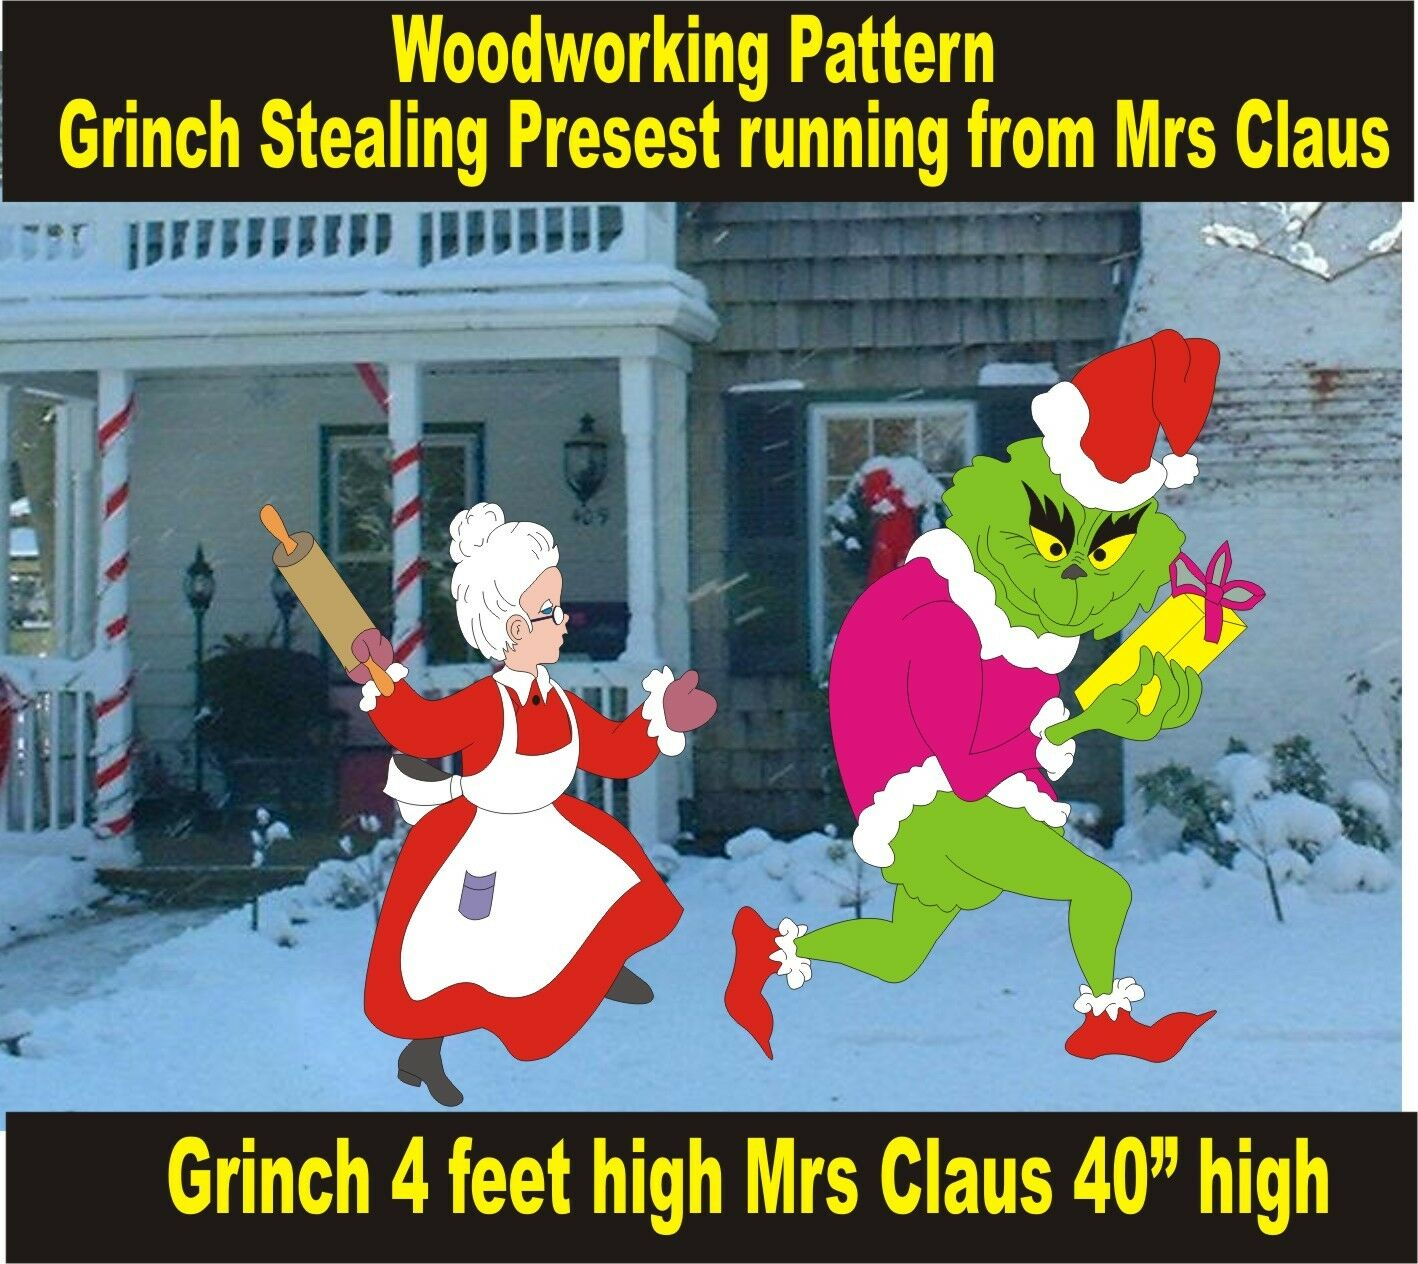 grinch stealing present running from mrs claus yard art pattern wood working